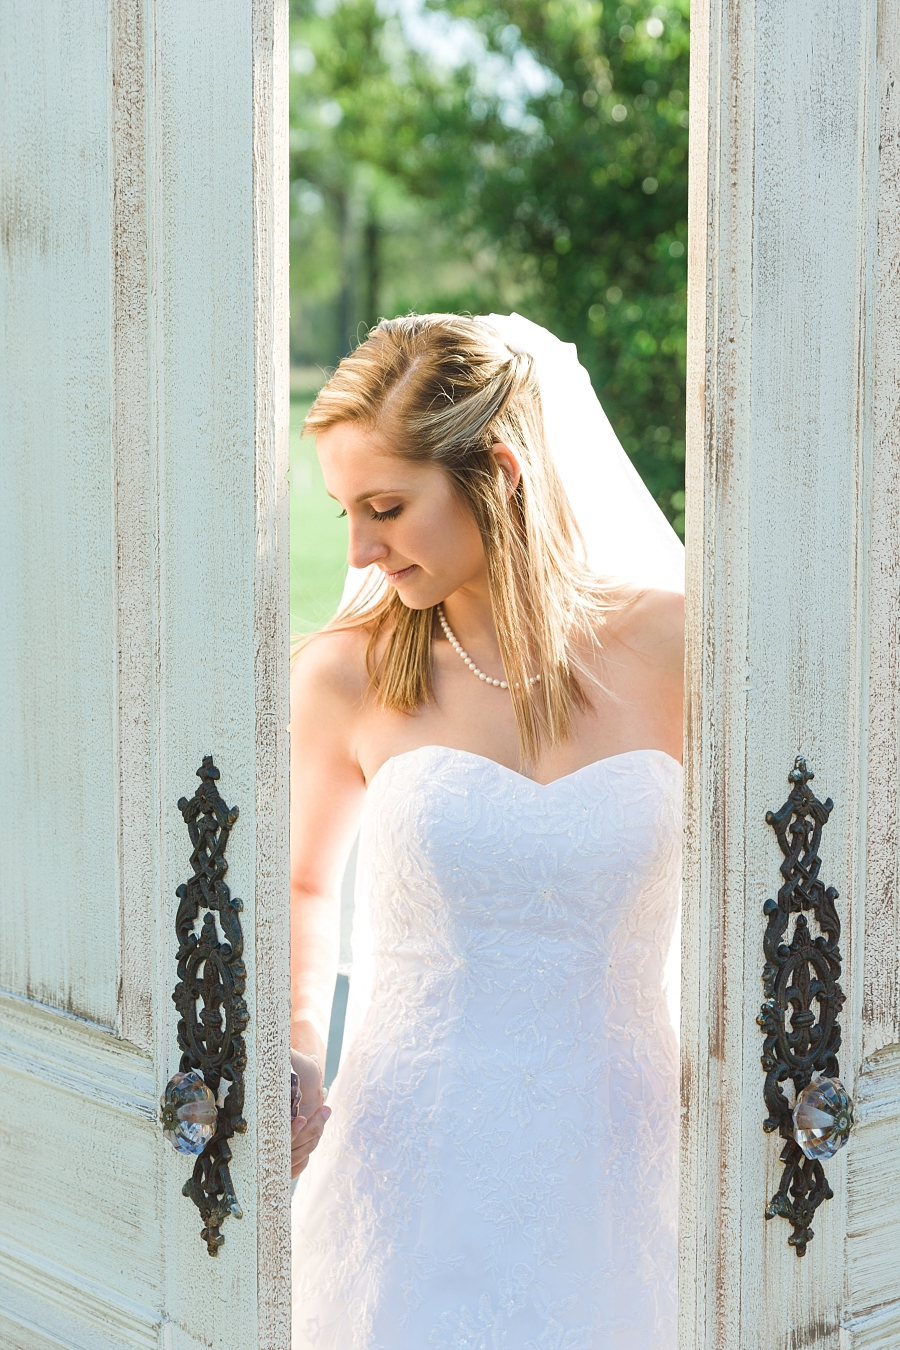 Stacy-Anderson-Photography-Carriage-House-Houston-Wedding-Photographer_0021.jpg